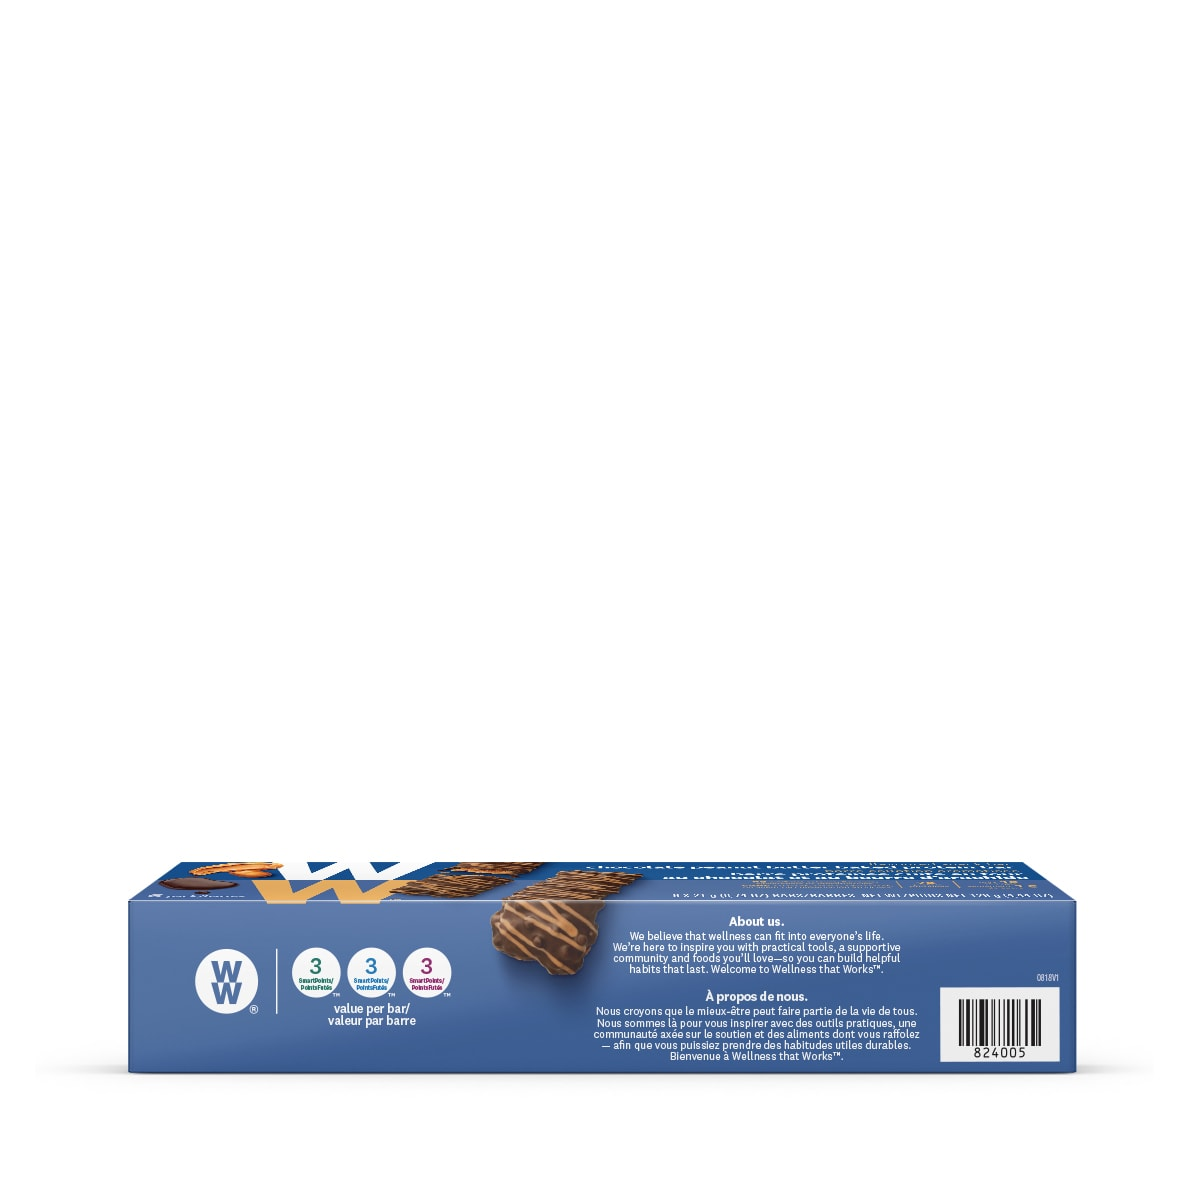 Chocolate Peanut Butter Baked Protein Bar (3 Pack) - side of box